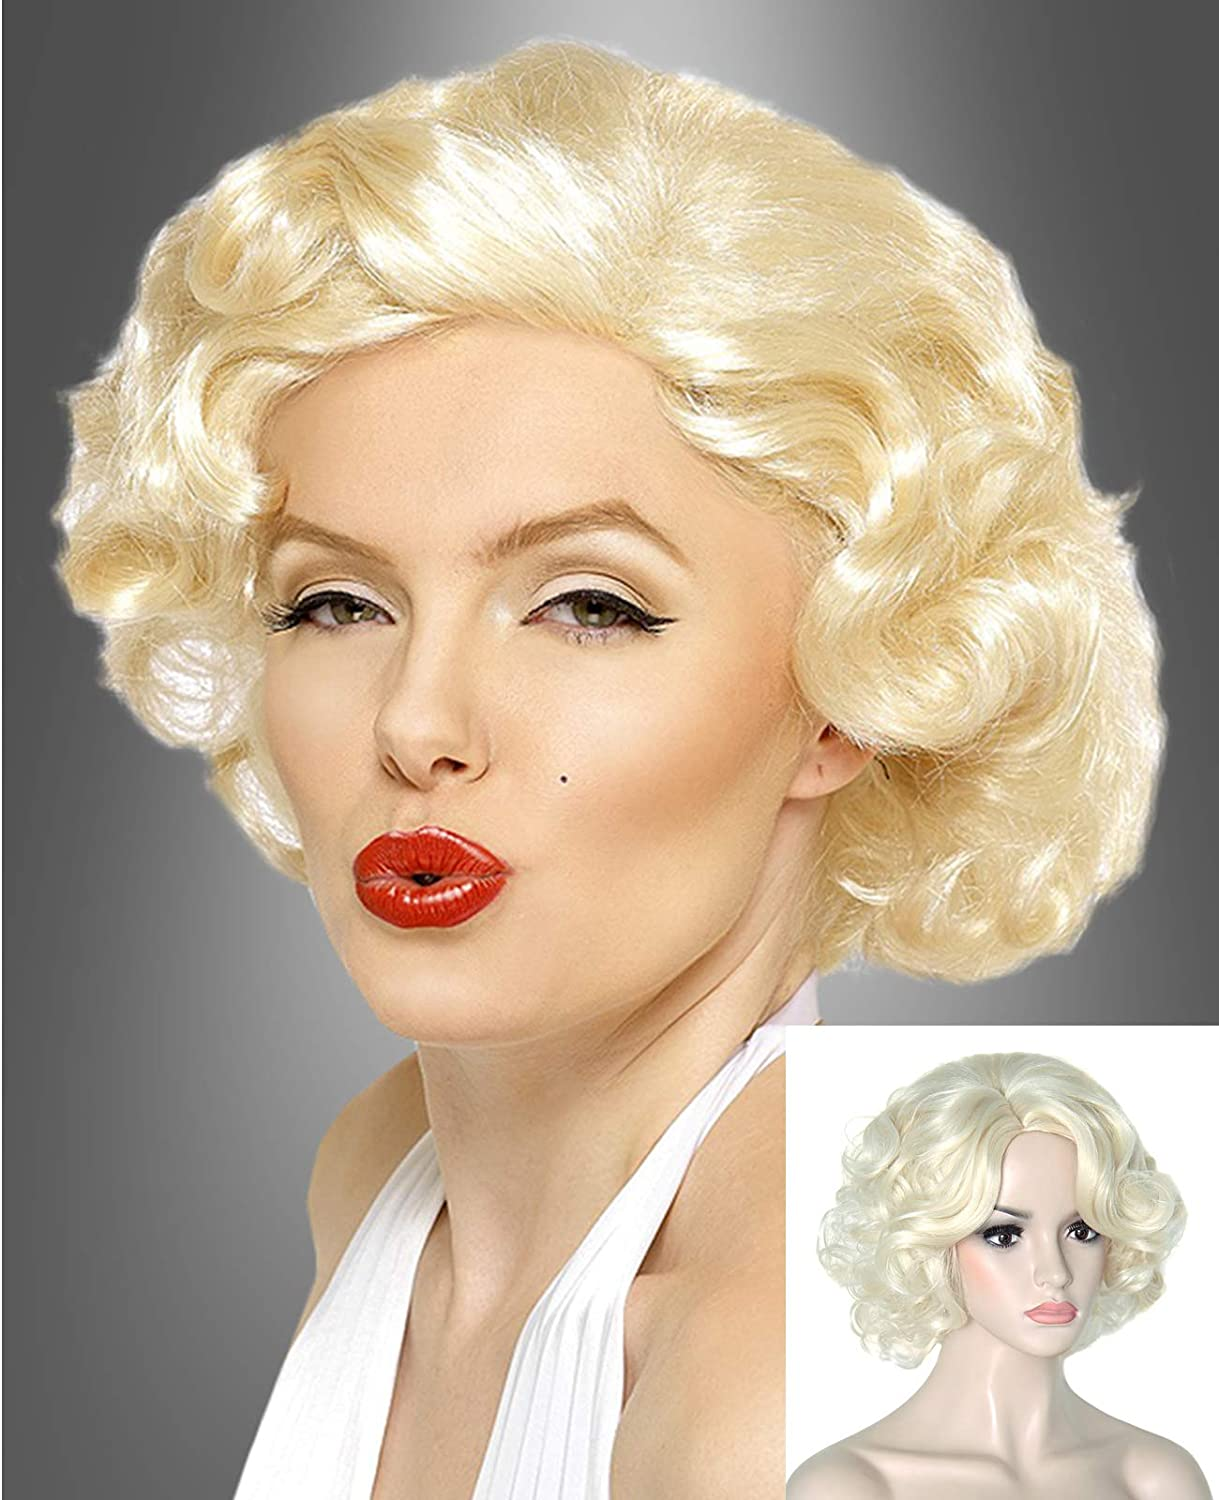 Juziviee Short Blonde Wigs for Women Marilyn Monroe Cosplay Costume Wavy Curly Hair Wig Natural Cute Heat Resistant Synthetic Wigs for Daily Party Halloween AD024B